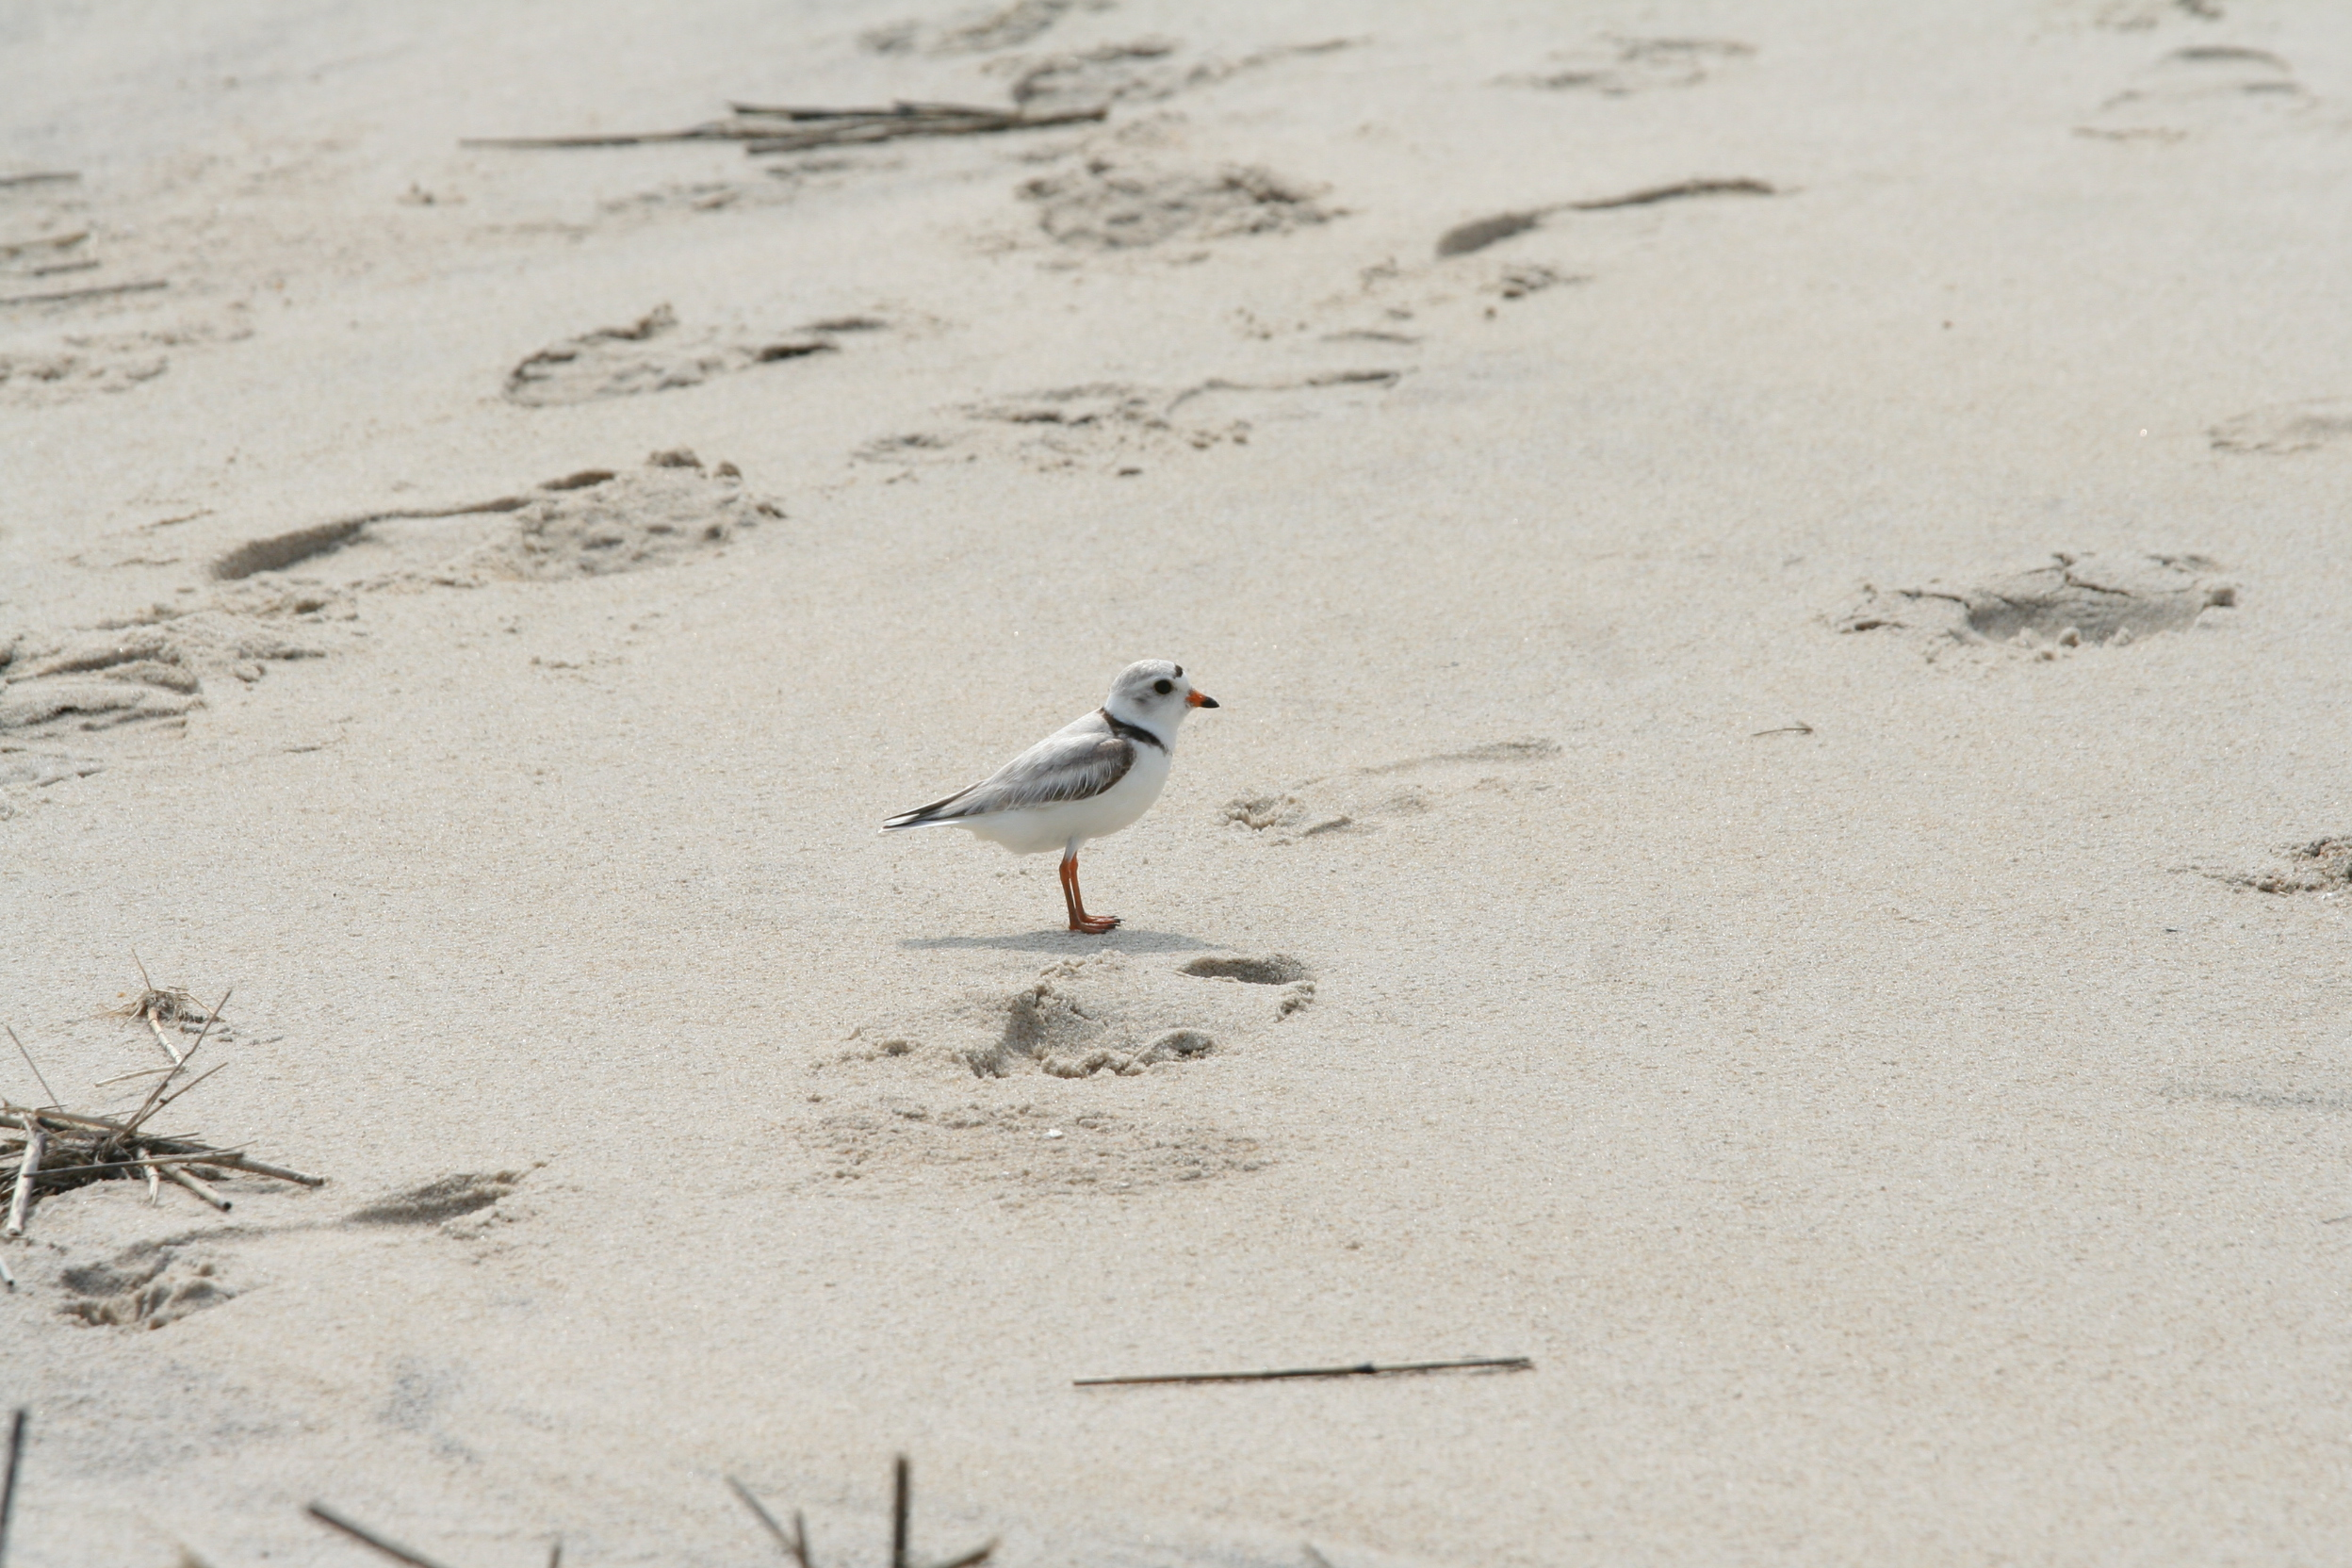 A piping plover on a beach